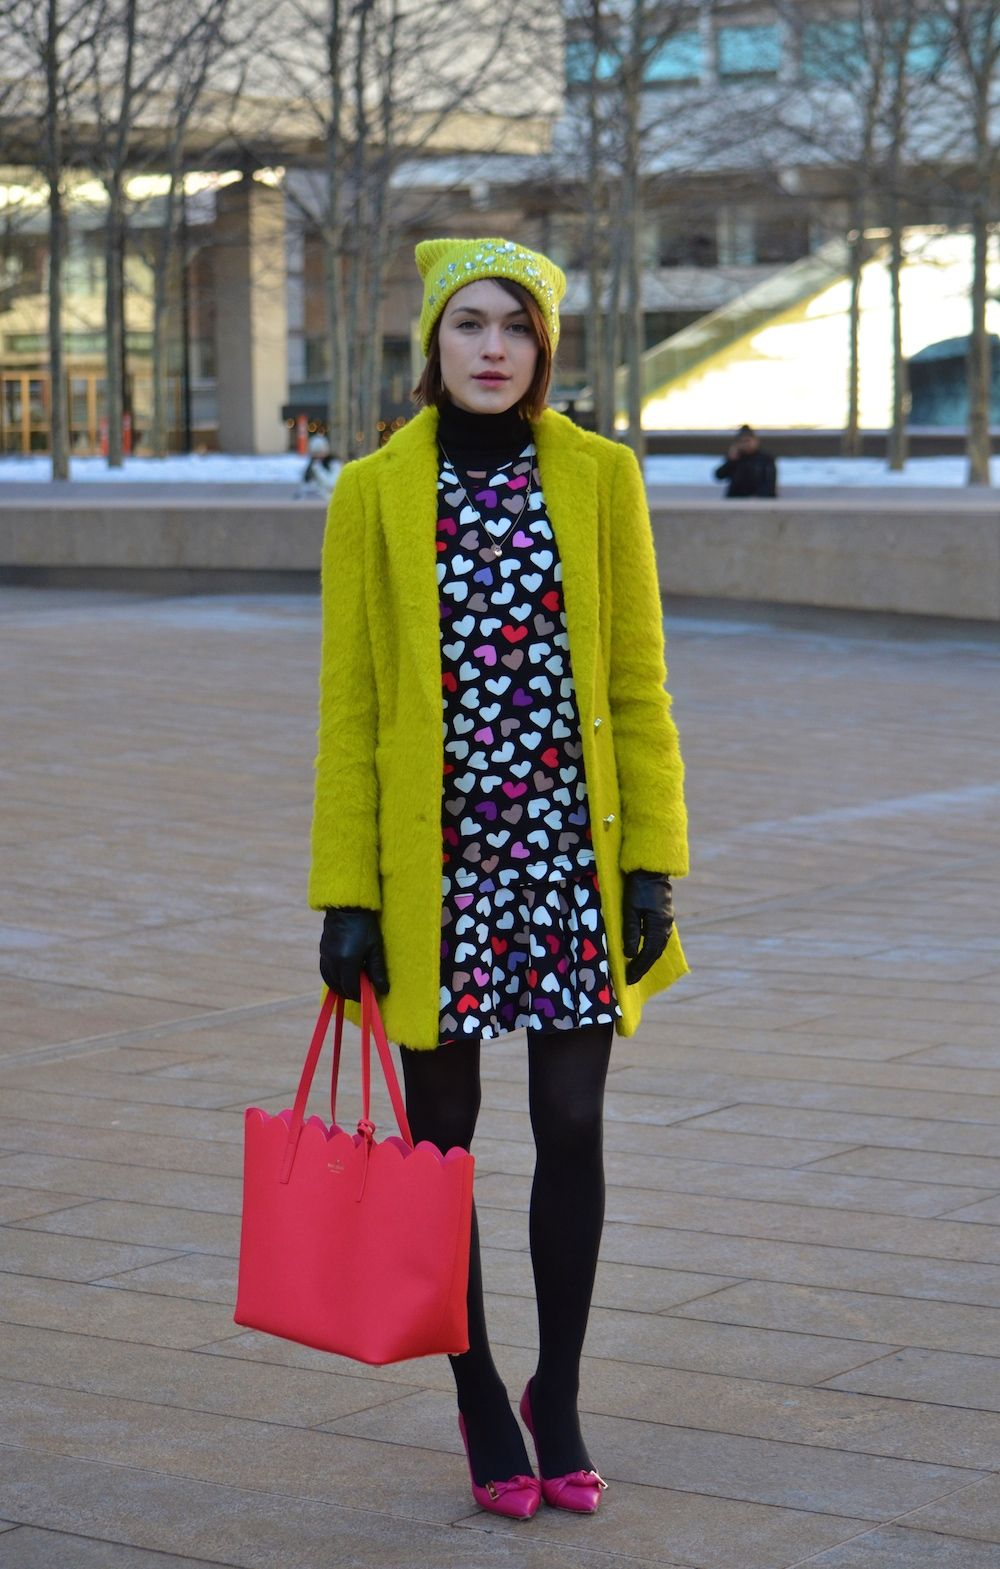 My loook for #NYFW #AW15 day 1 // wearing kate spade ny, Markus Lupfer and Mulberry // click through for my full show diary